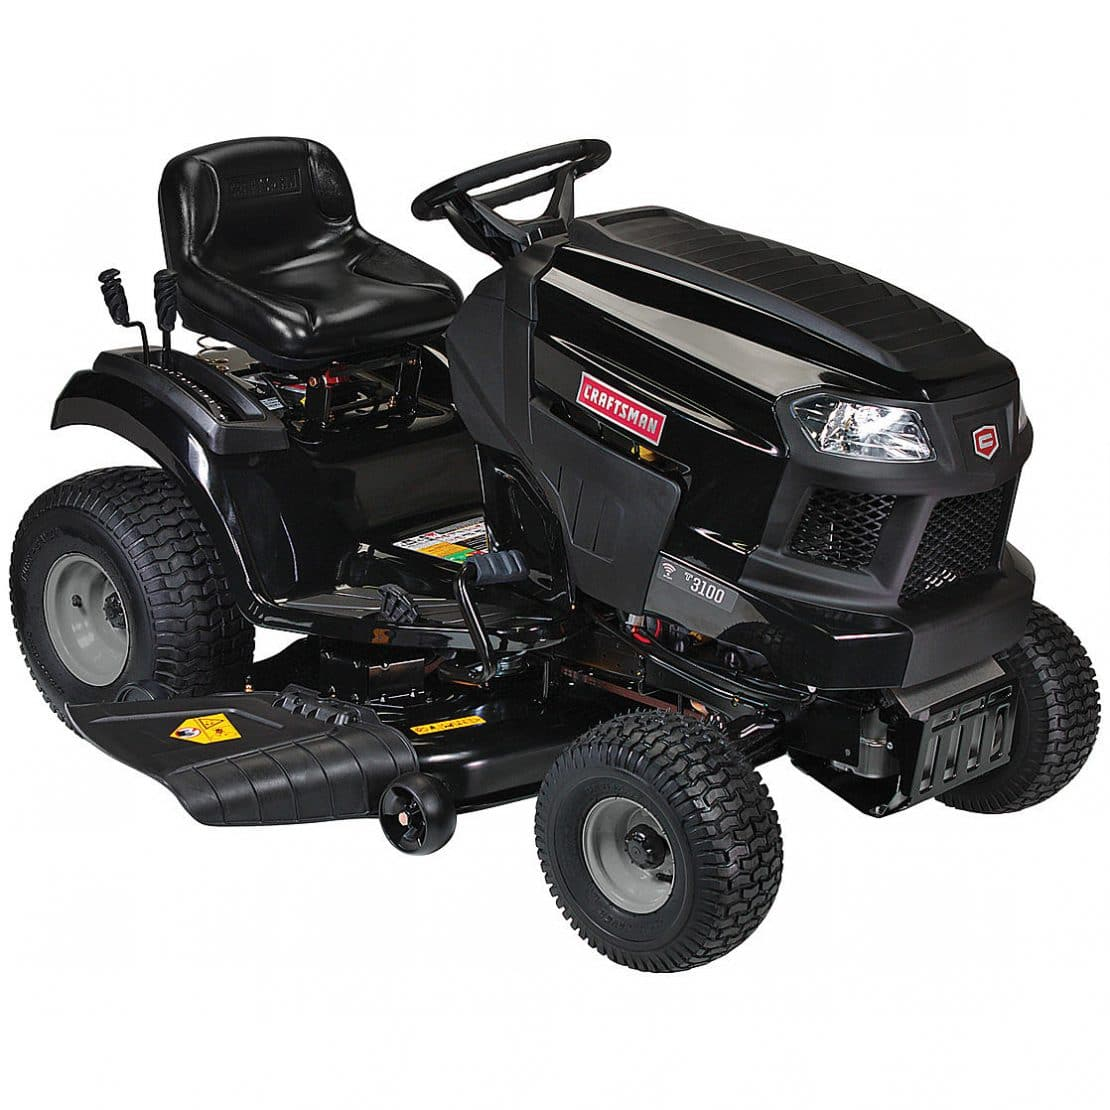 Seven Best Riding Mowers Under $1500 for 2018 - TodaysMower com